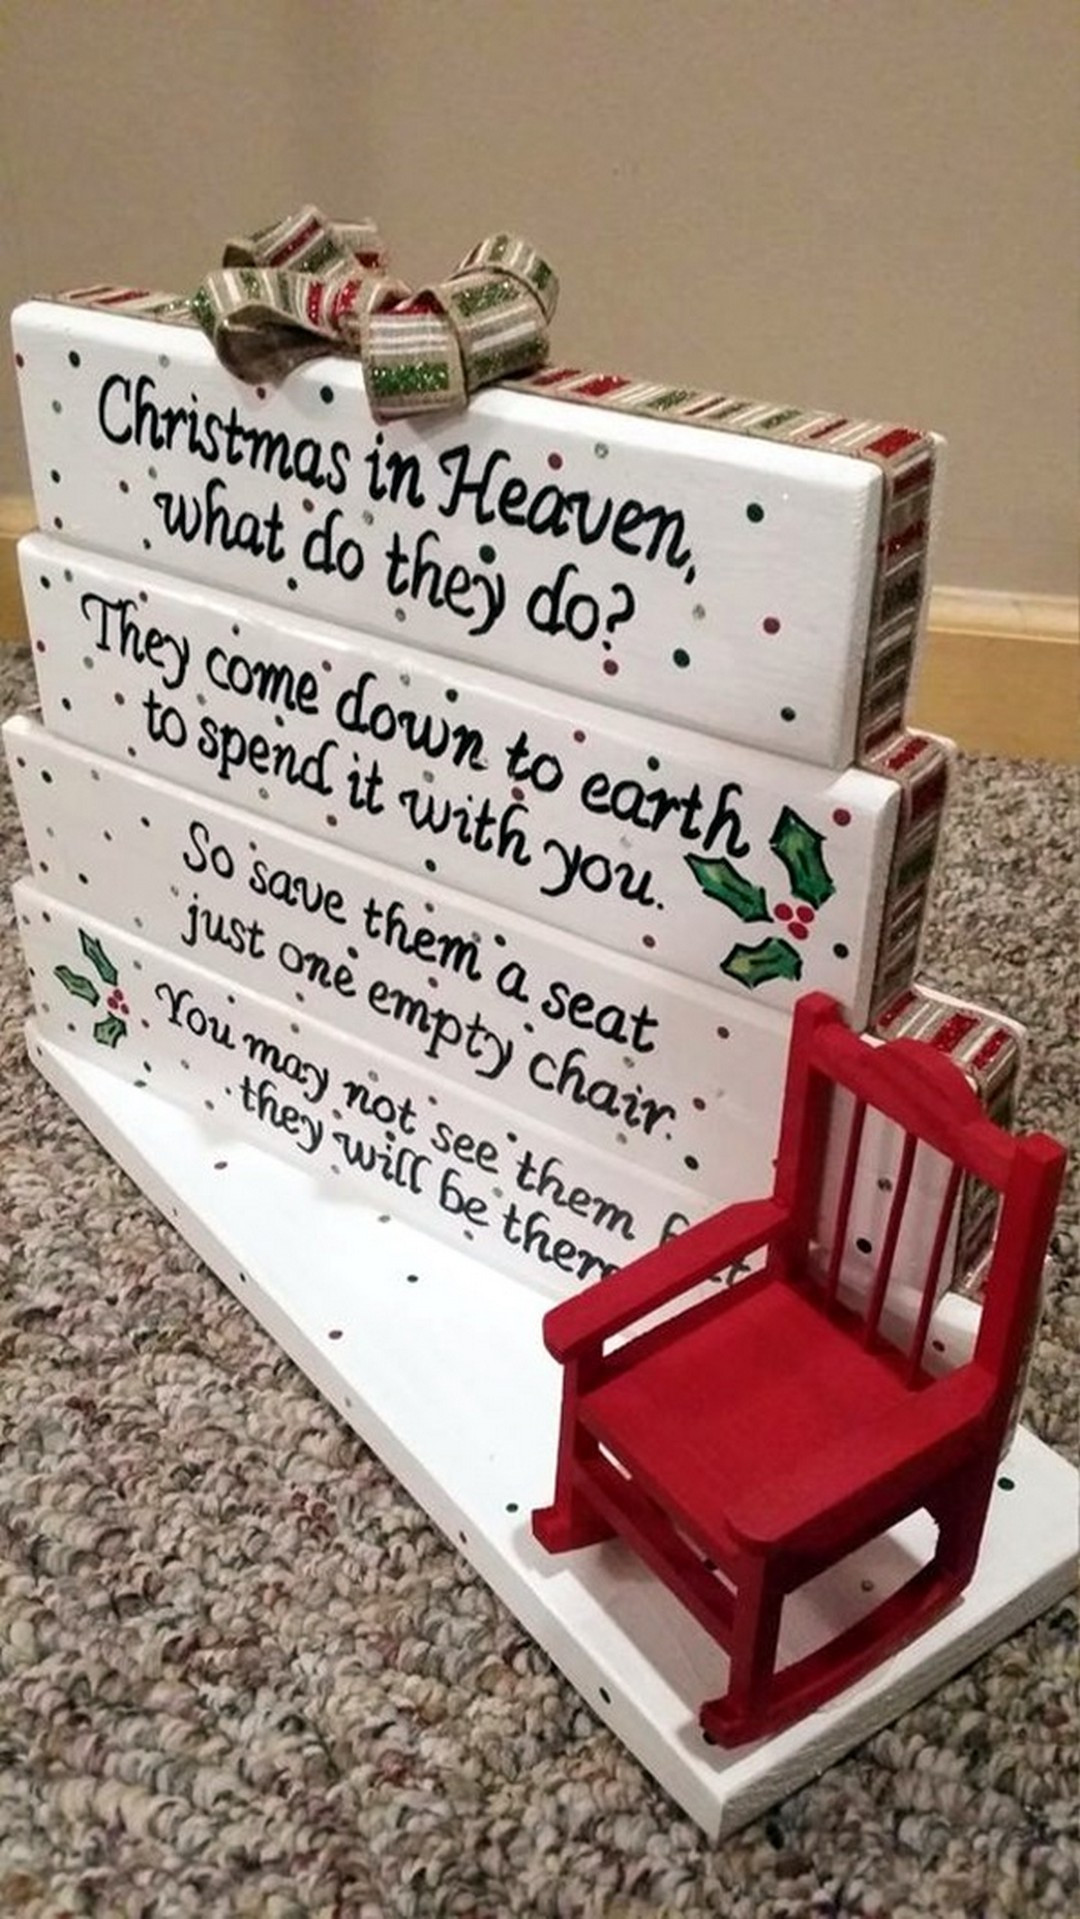 Best ideas about DIY Christmas Gifts For Family . Save or Pin 25 Best DIY Christmas Gifts Ideas for Your Family or Now.